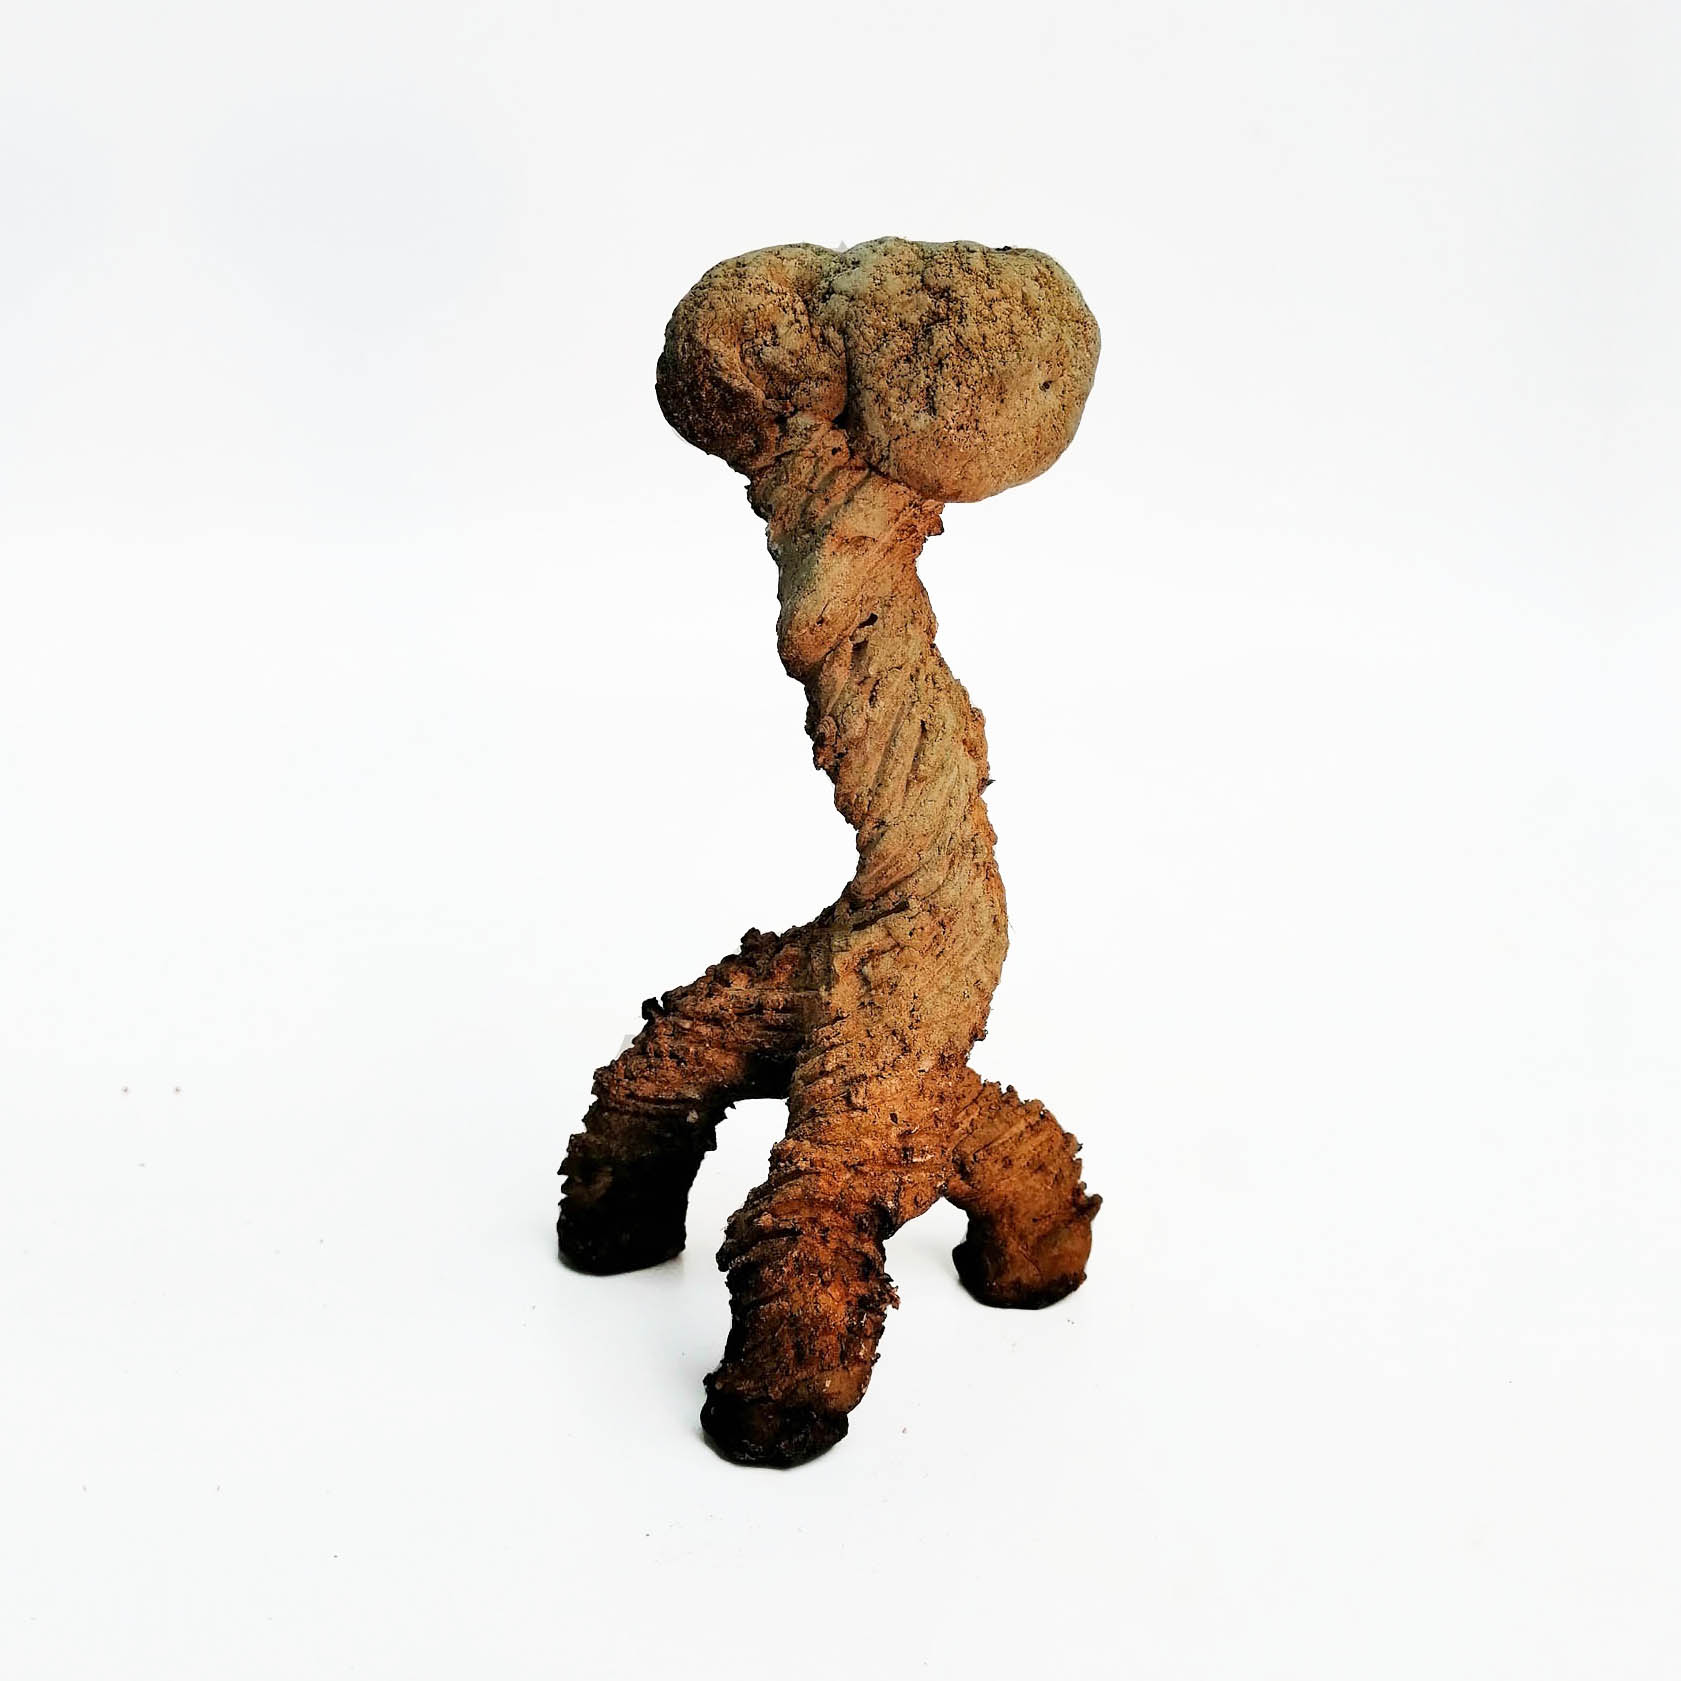 By Gabriel Niquete, Yucatecan #5, this sculpture manifests itself naturally and expresses movement and vitality. A novel artistic expression in American art.